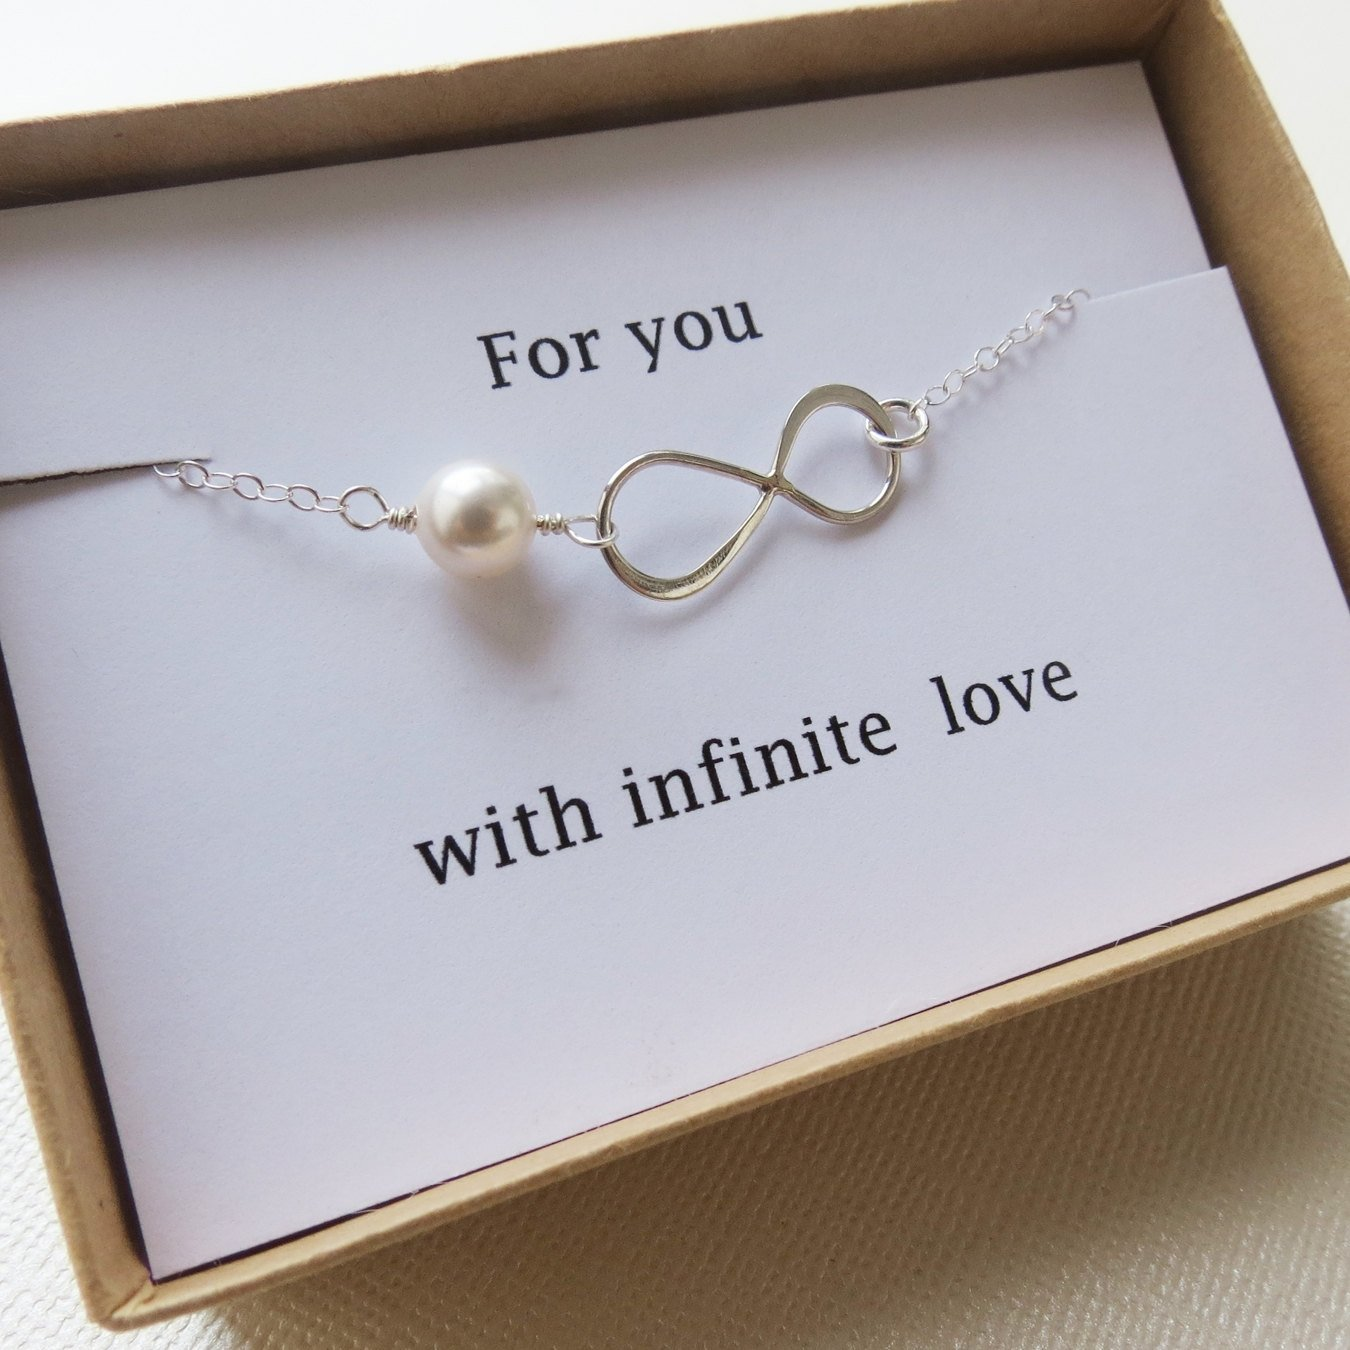 10 Most Popular Christmas Gift Idea For Girlfriend infinity bracelet love holiday gift infinity jewelry card 2021